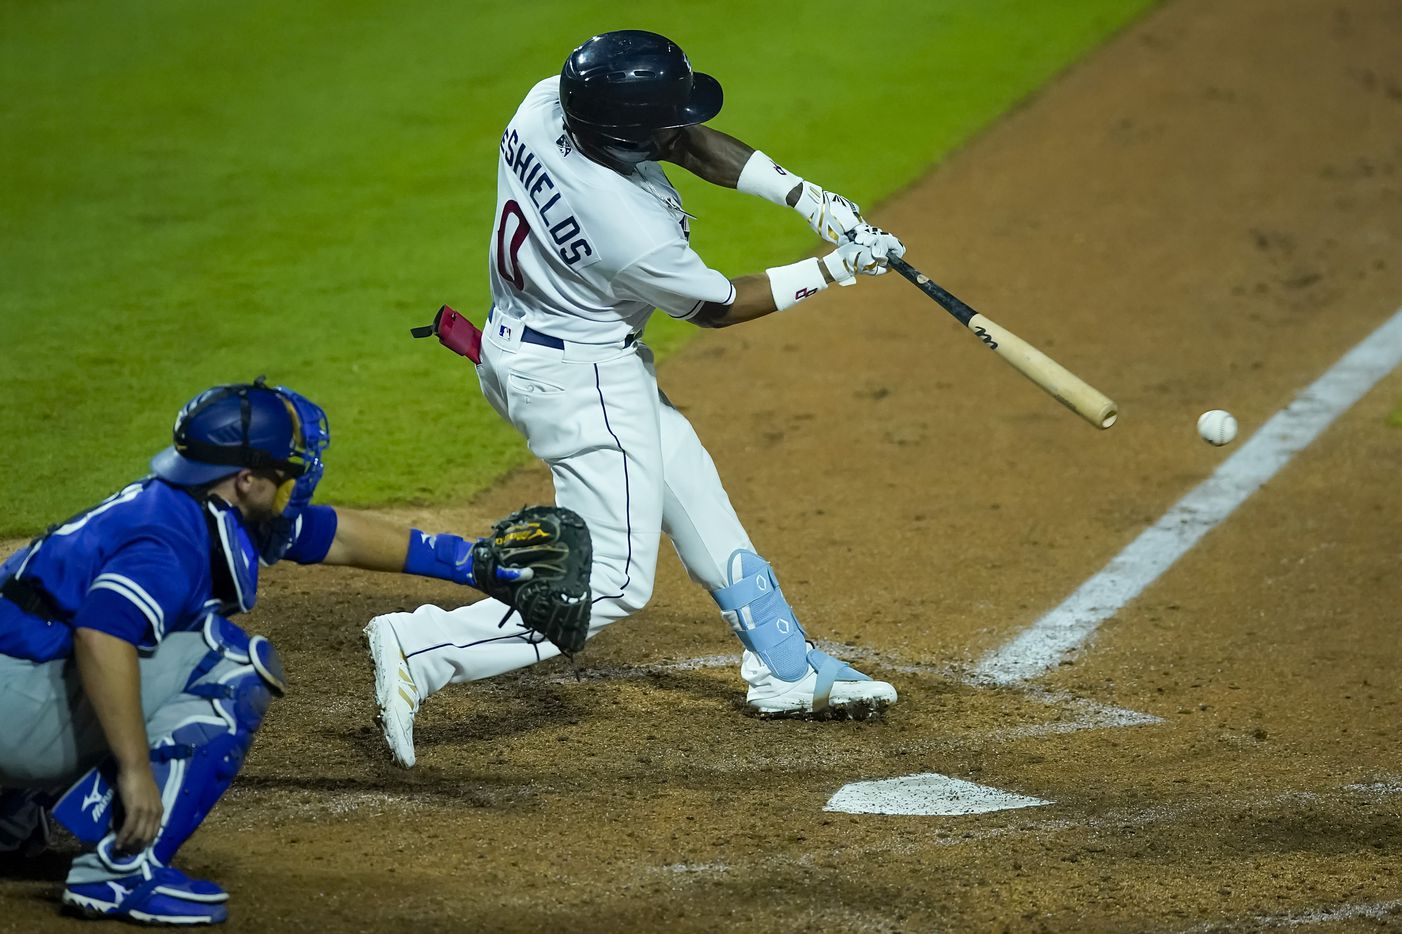 Round Rock Express outfielder Delino DeShields drives in two runs with a double during the seventh inning against the Oklahoma City Dodgers at Dell Diamond on Thursday, May 6, 2021, in Round Rock, Texas.